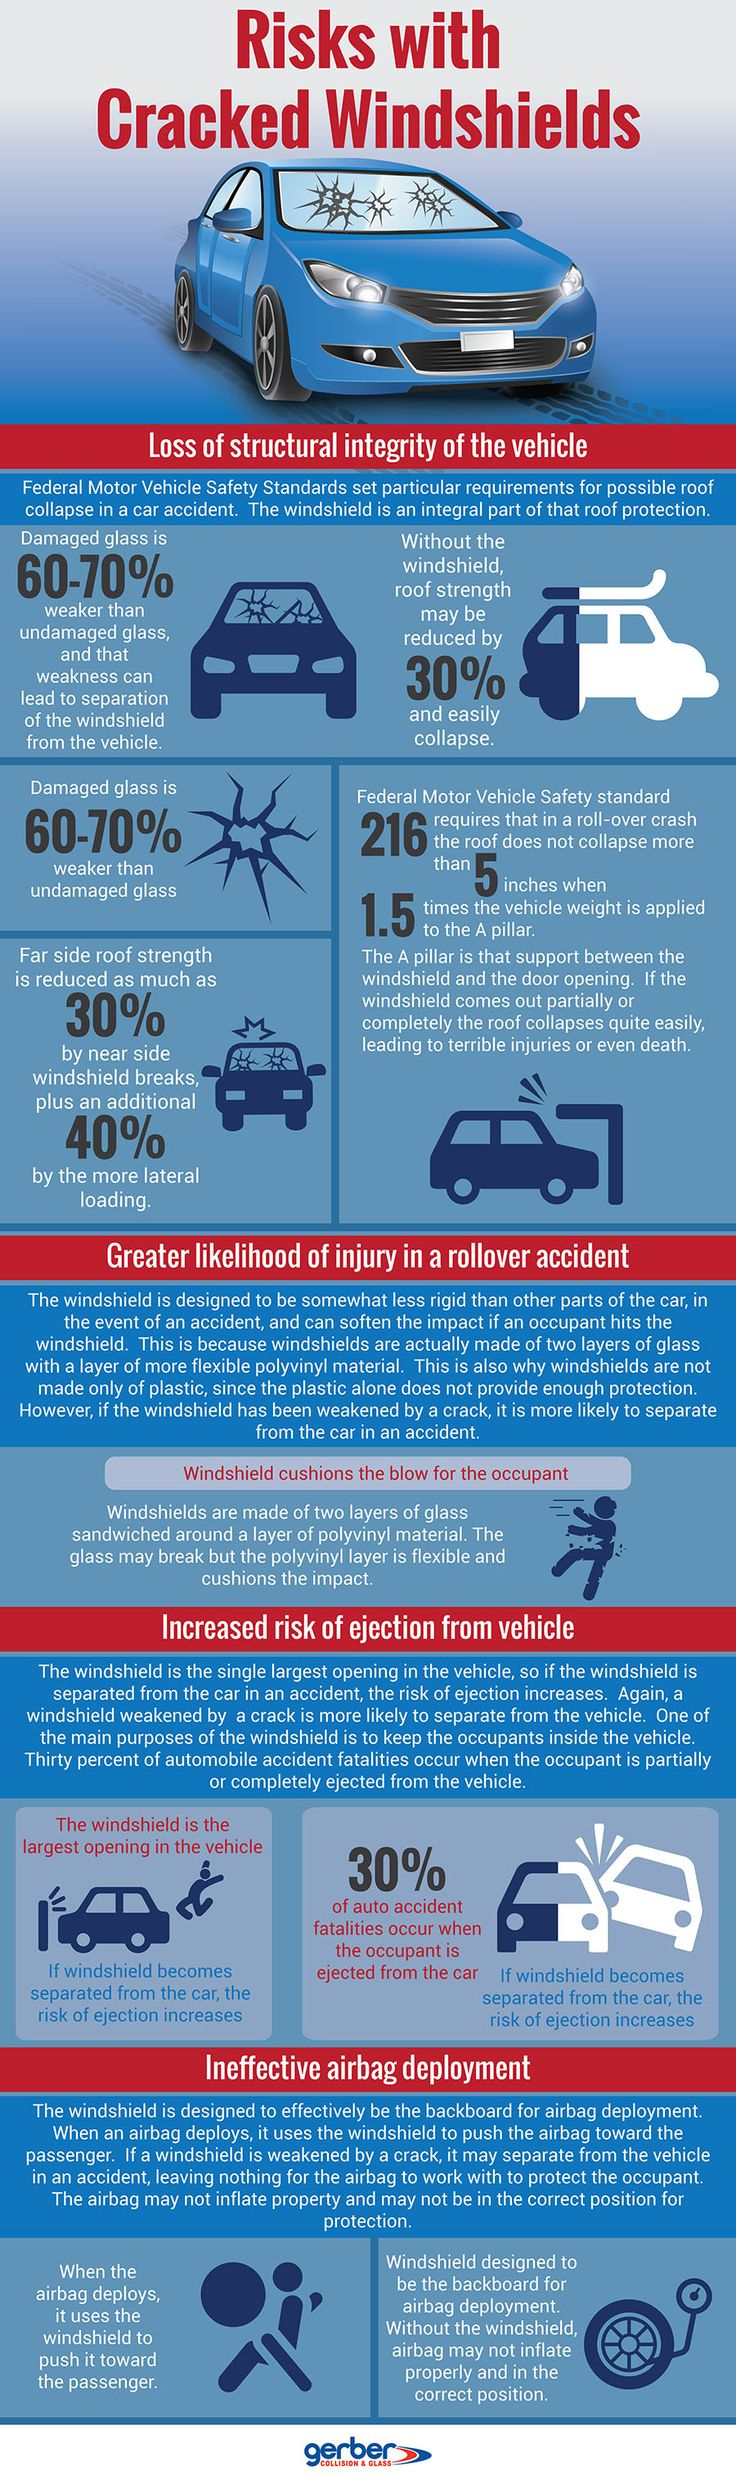 Risks with Cracked Windshields #infographic #Driving #Transportation